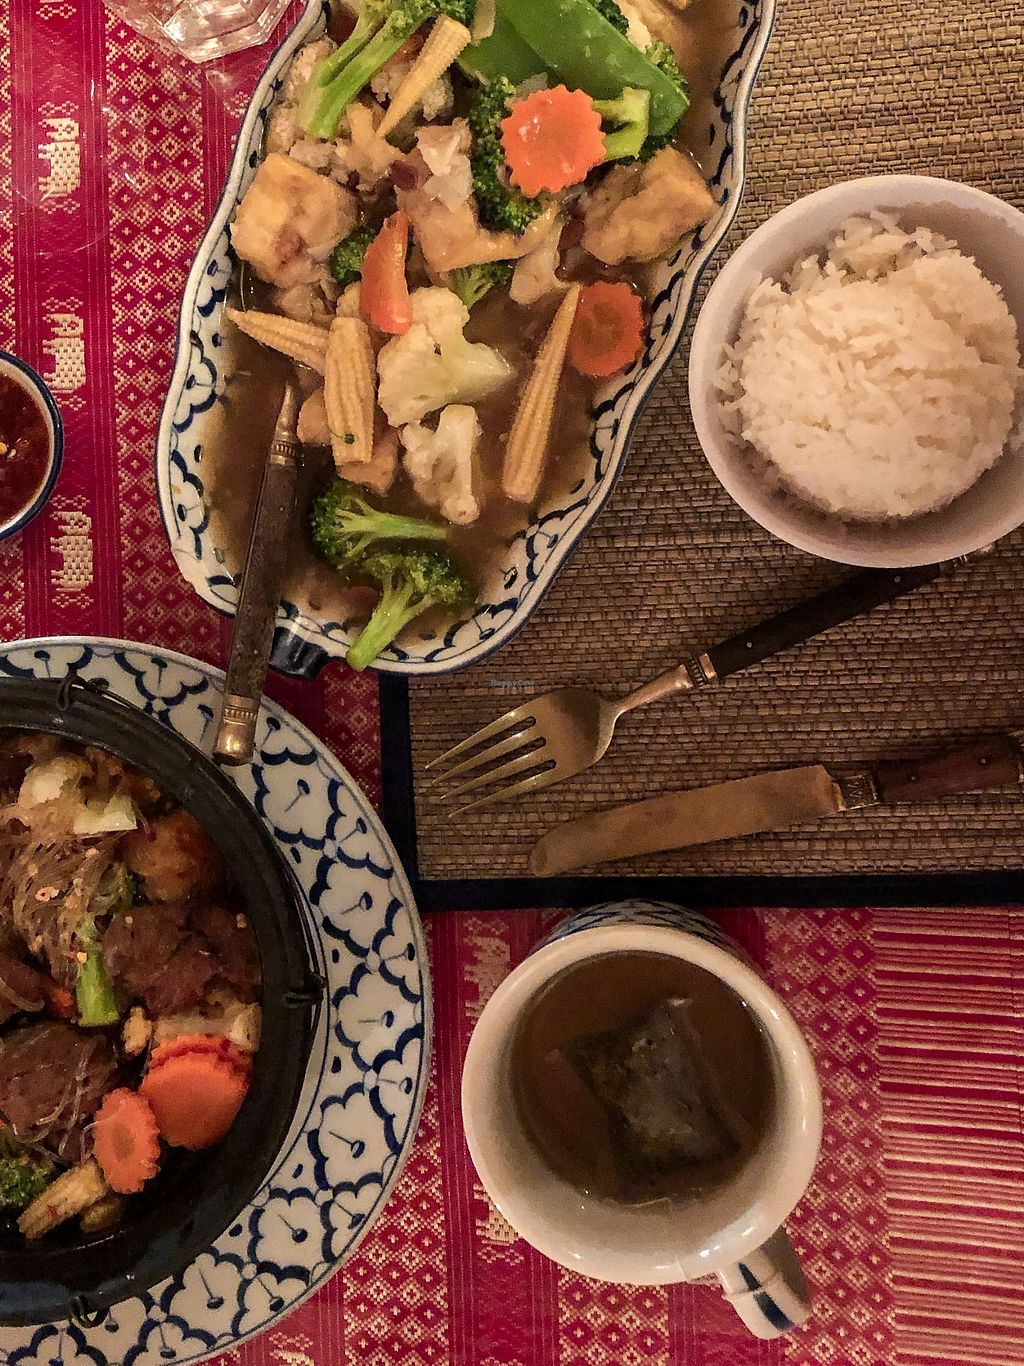 """Photo of Thai House  by <a href=""""/members/profile/BriggitteJ"""">BriggitteJ</a> <br/>Vegan duck with glass noddles in hot pot and Lad Na with vegetables and tofu.  <br/> January 7, 2018  - <a href='/contact/abuse/image/108912/343984'>Report</a>"""